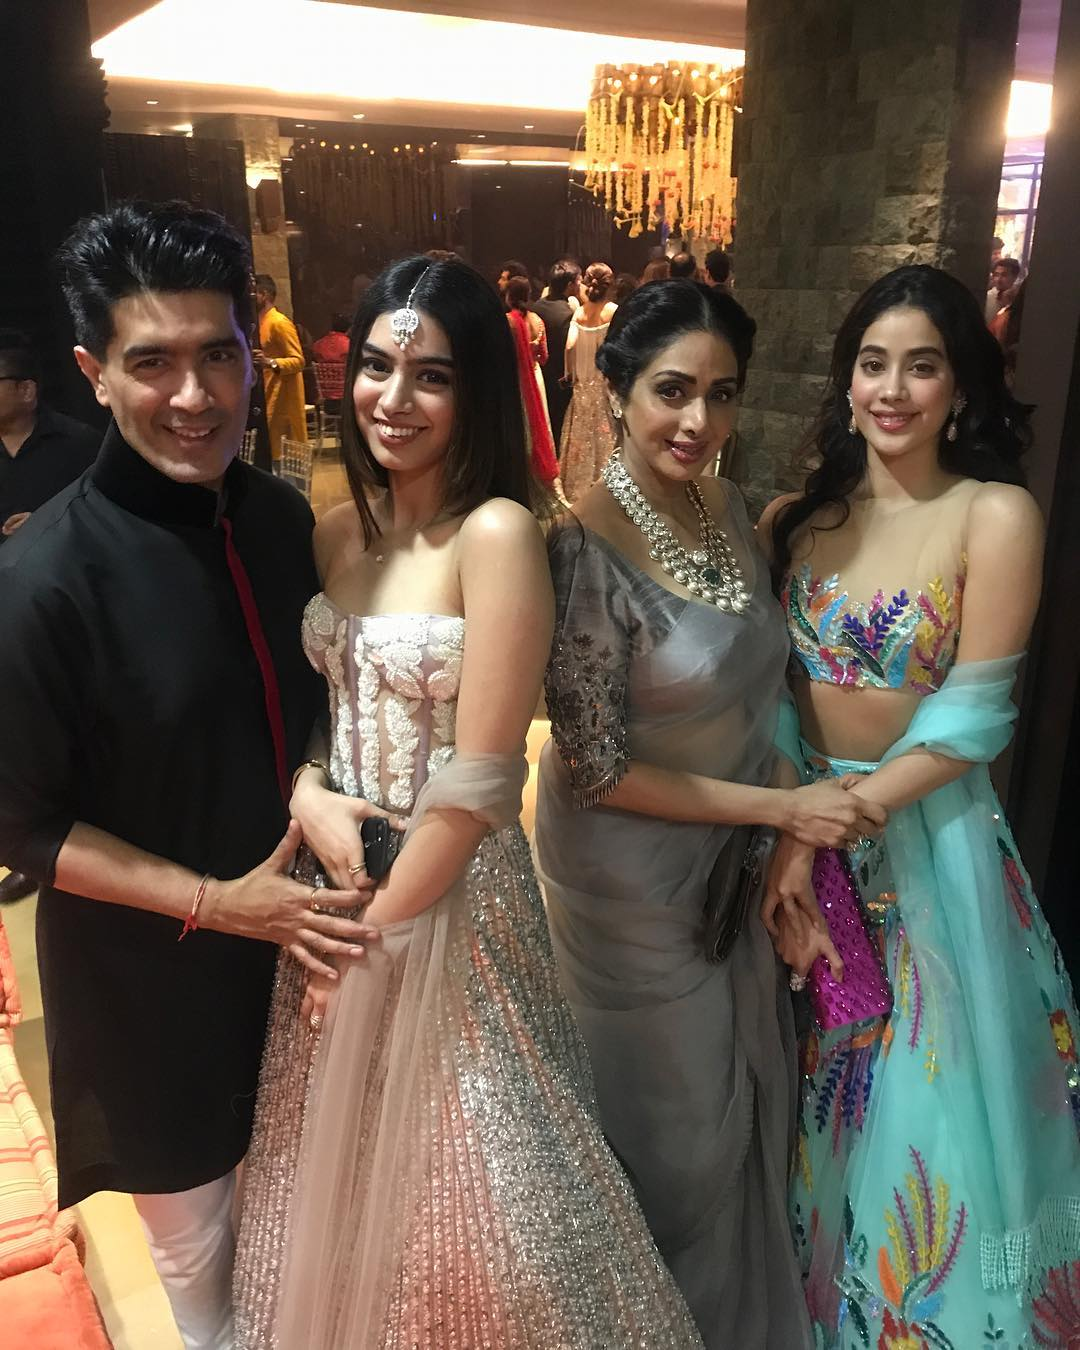 4-palak-tiwari-janhvi-kapoor-with-sridevi-khushi-at-wedding-old-pic